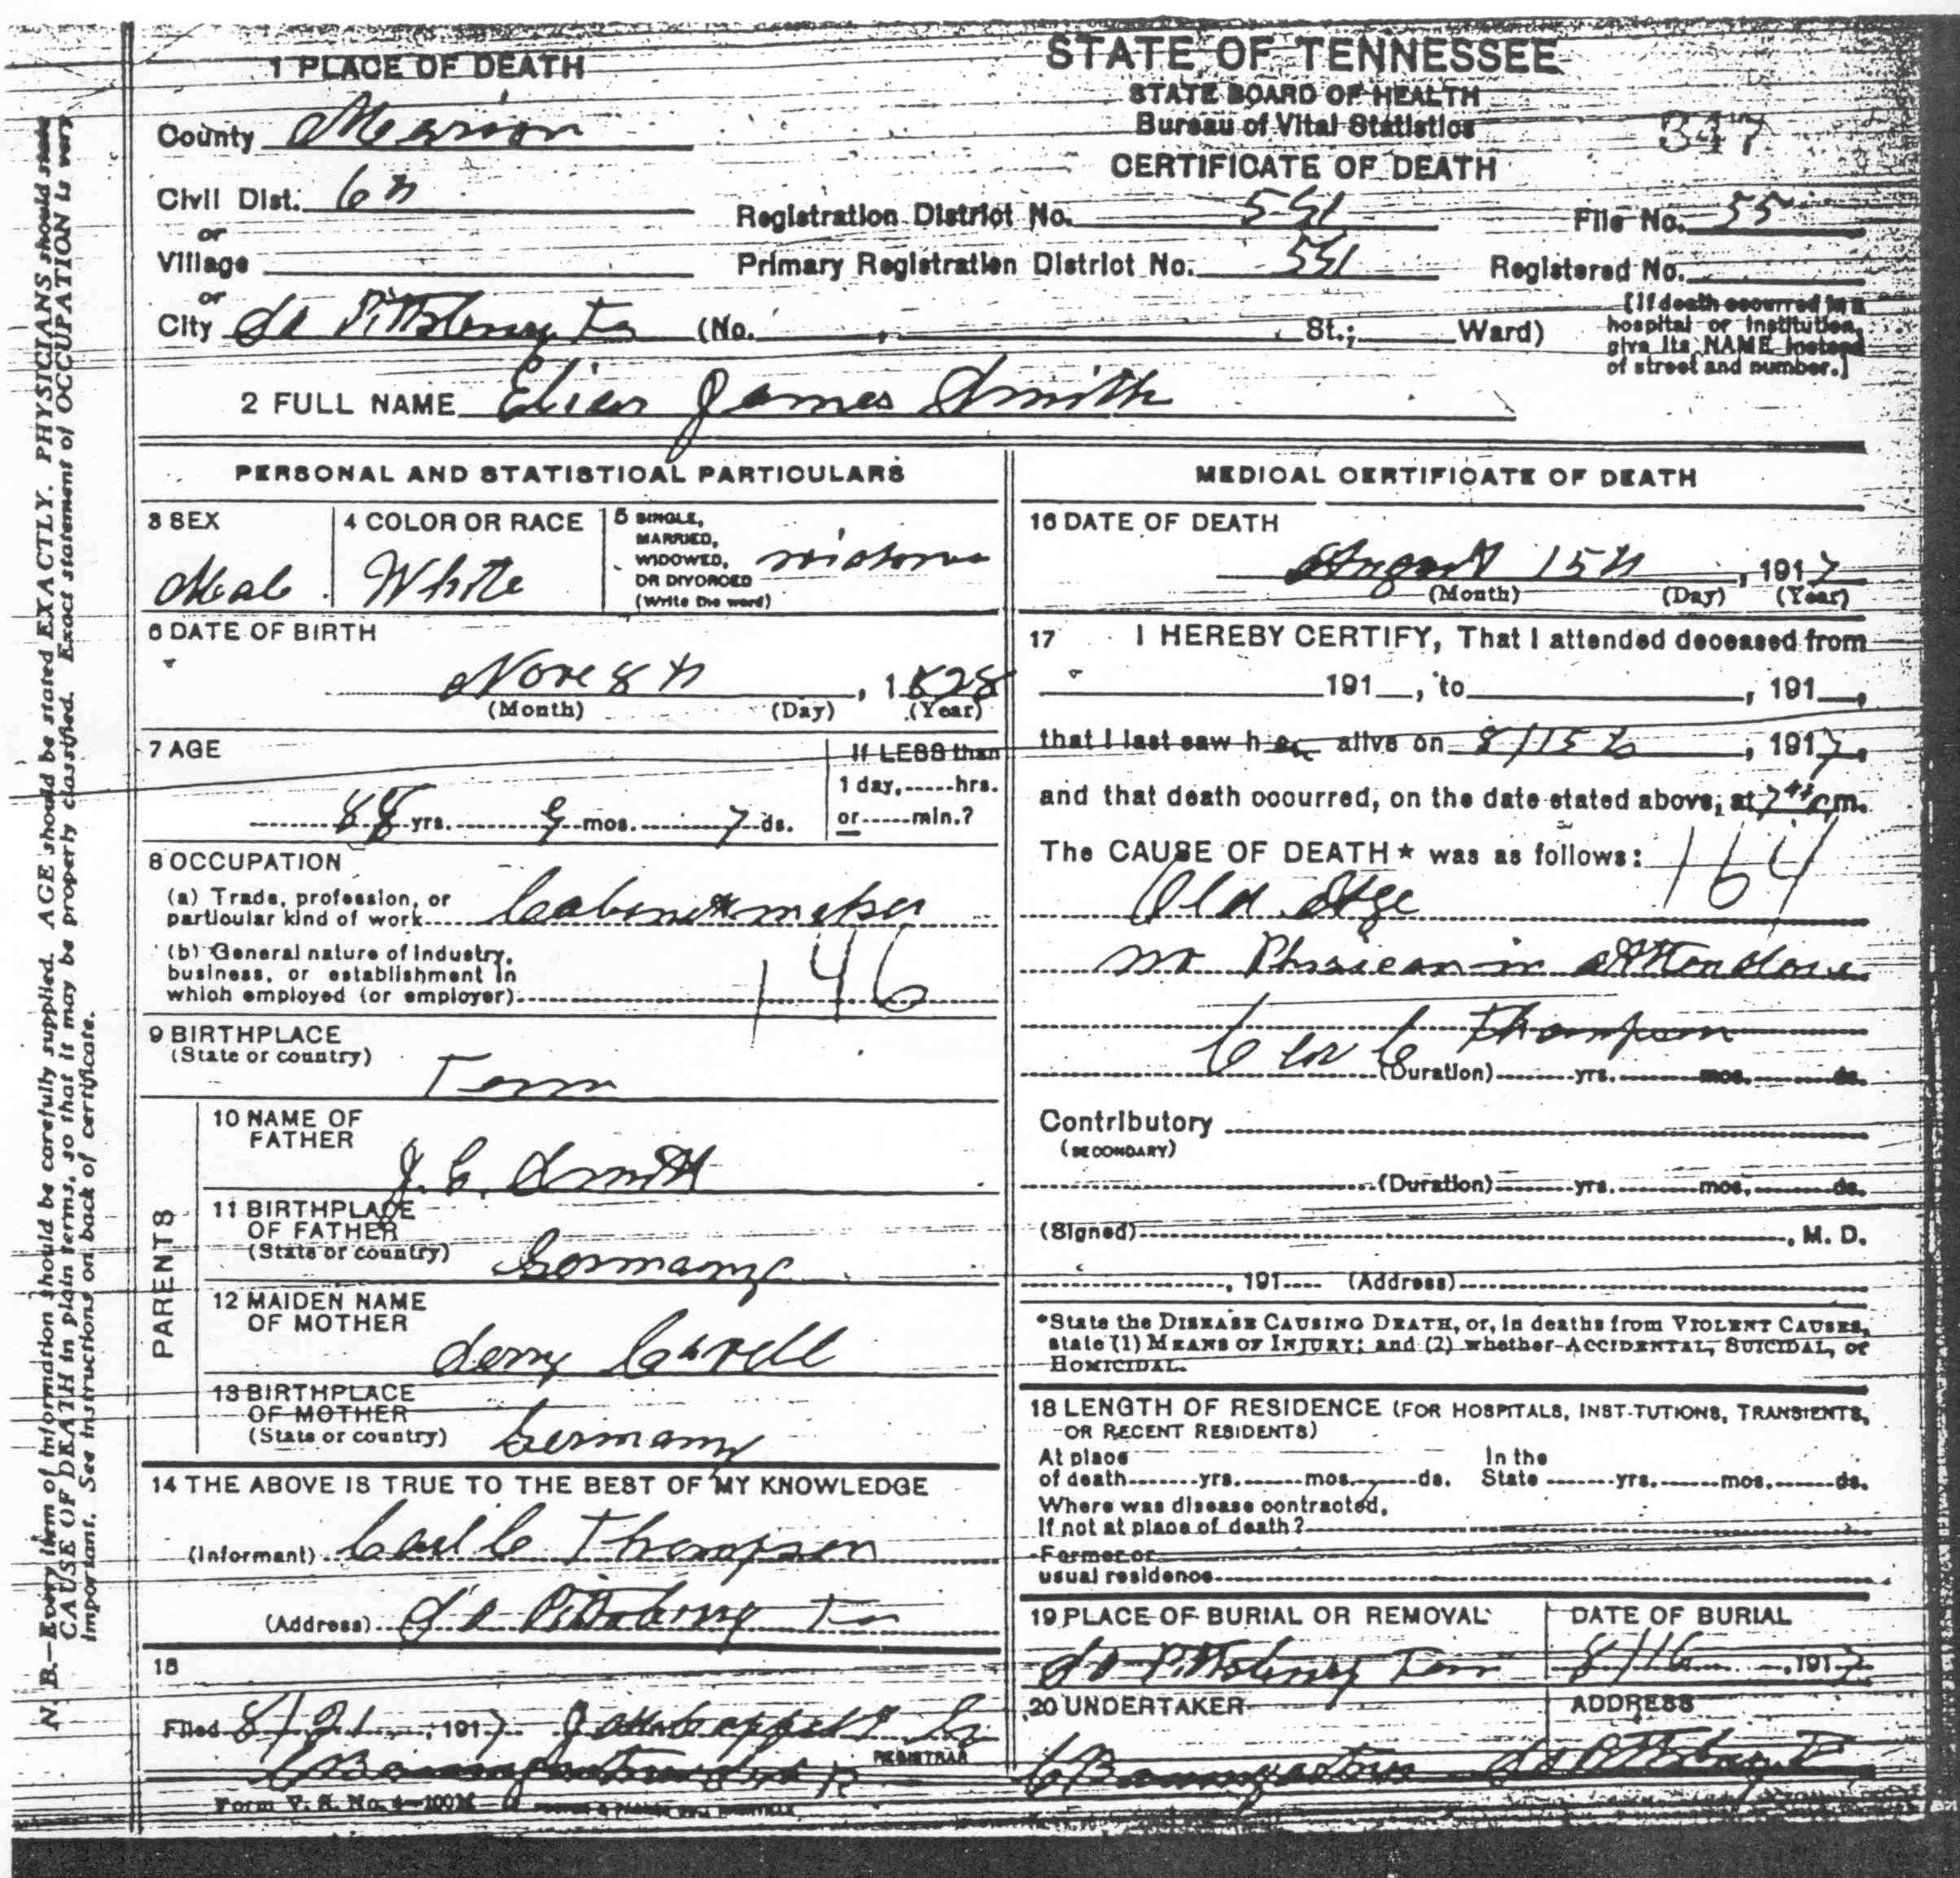 Elias james smith 1828 1917 find a grave memorial tennessee death certificate name elias james smith birth date 8 nov 1828 birth place tennessee age 88 death date 15 aug 1917 death place south 1betcityfo Images